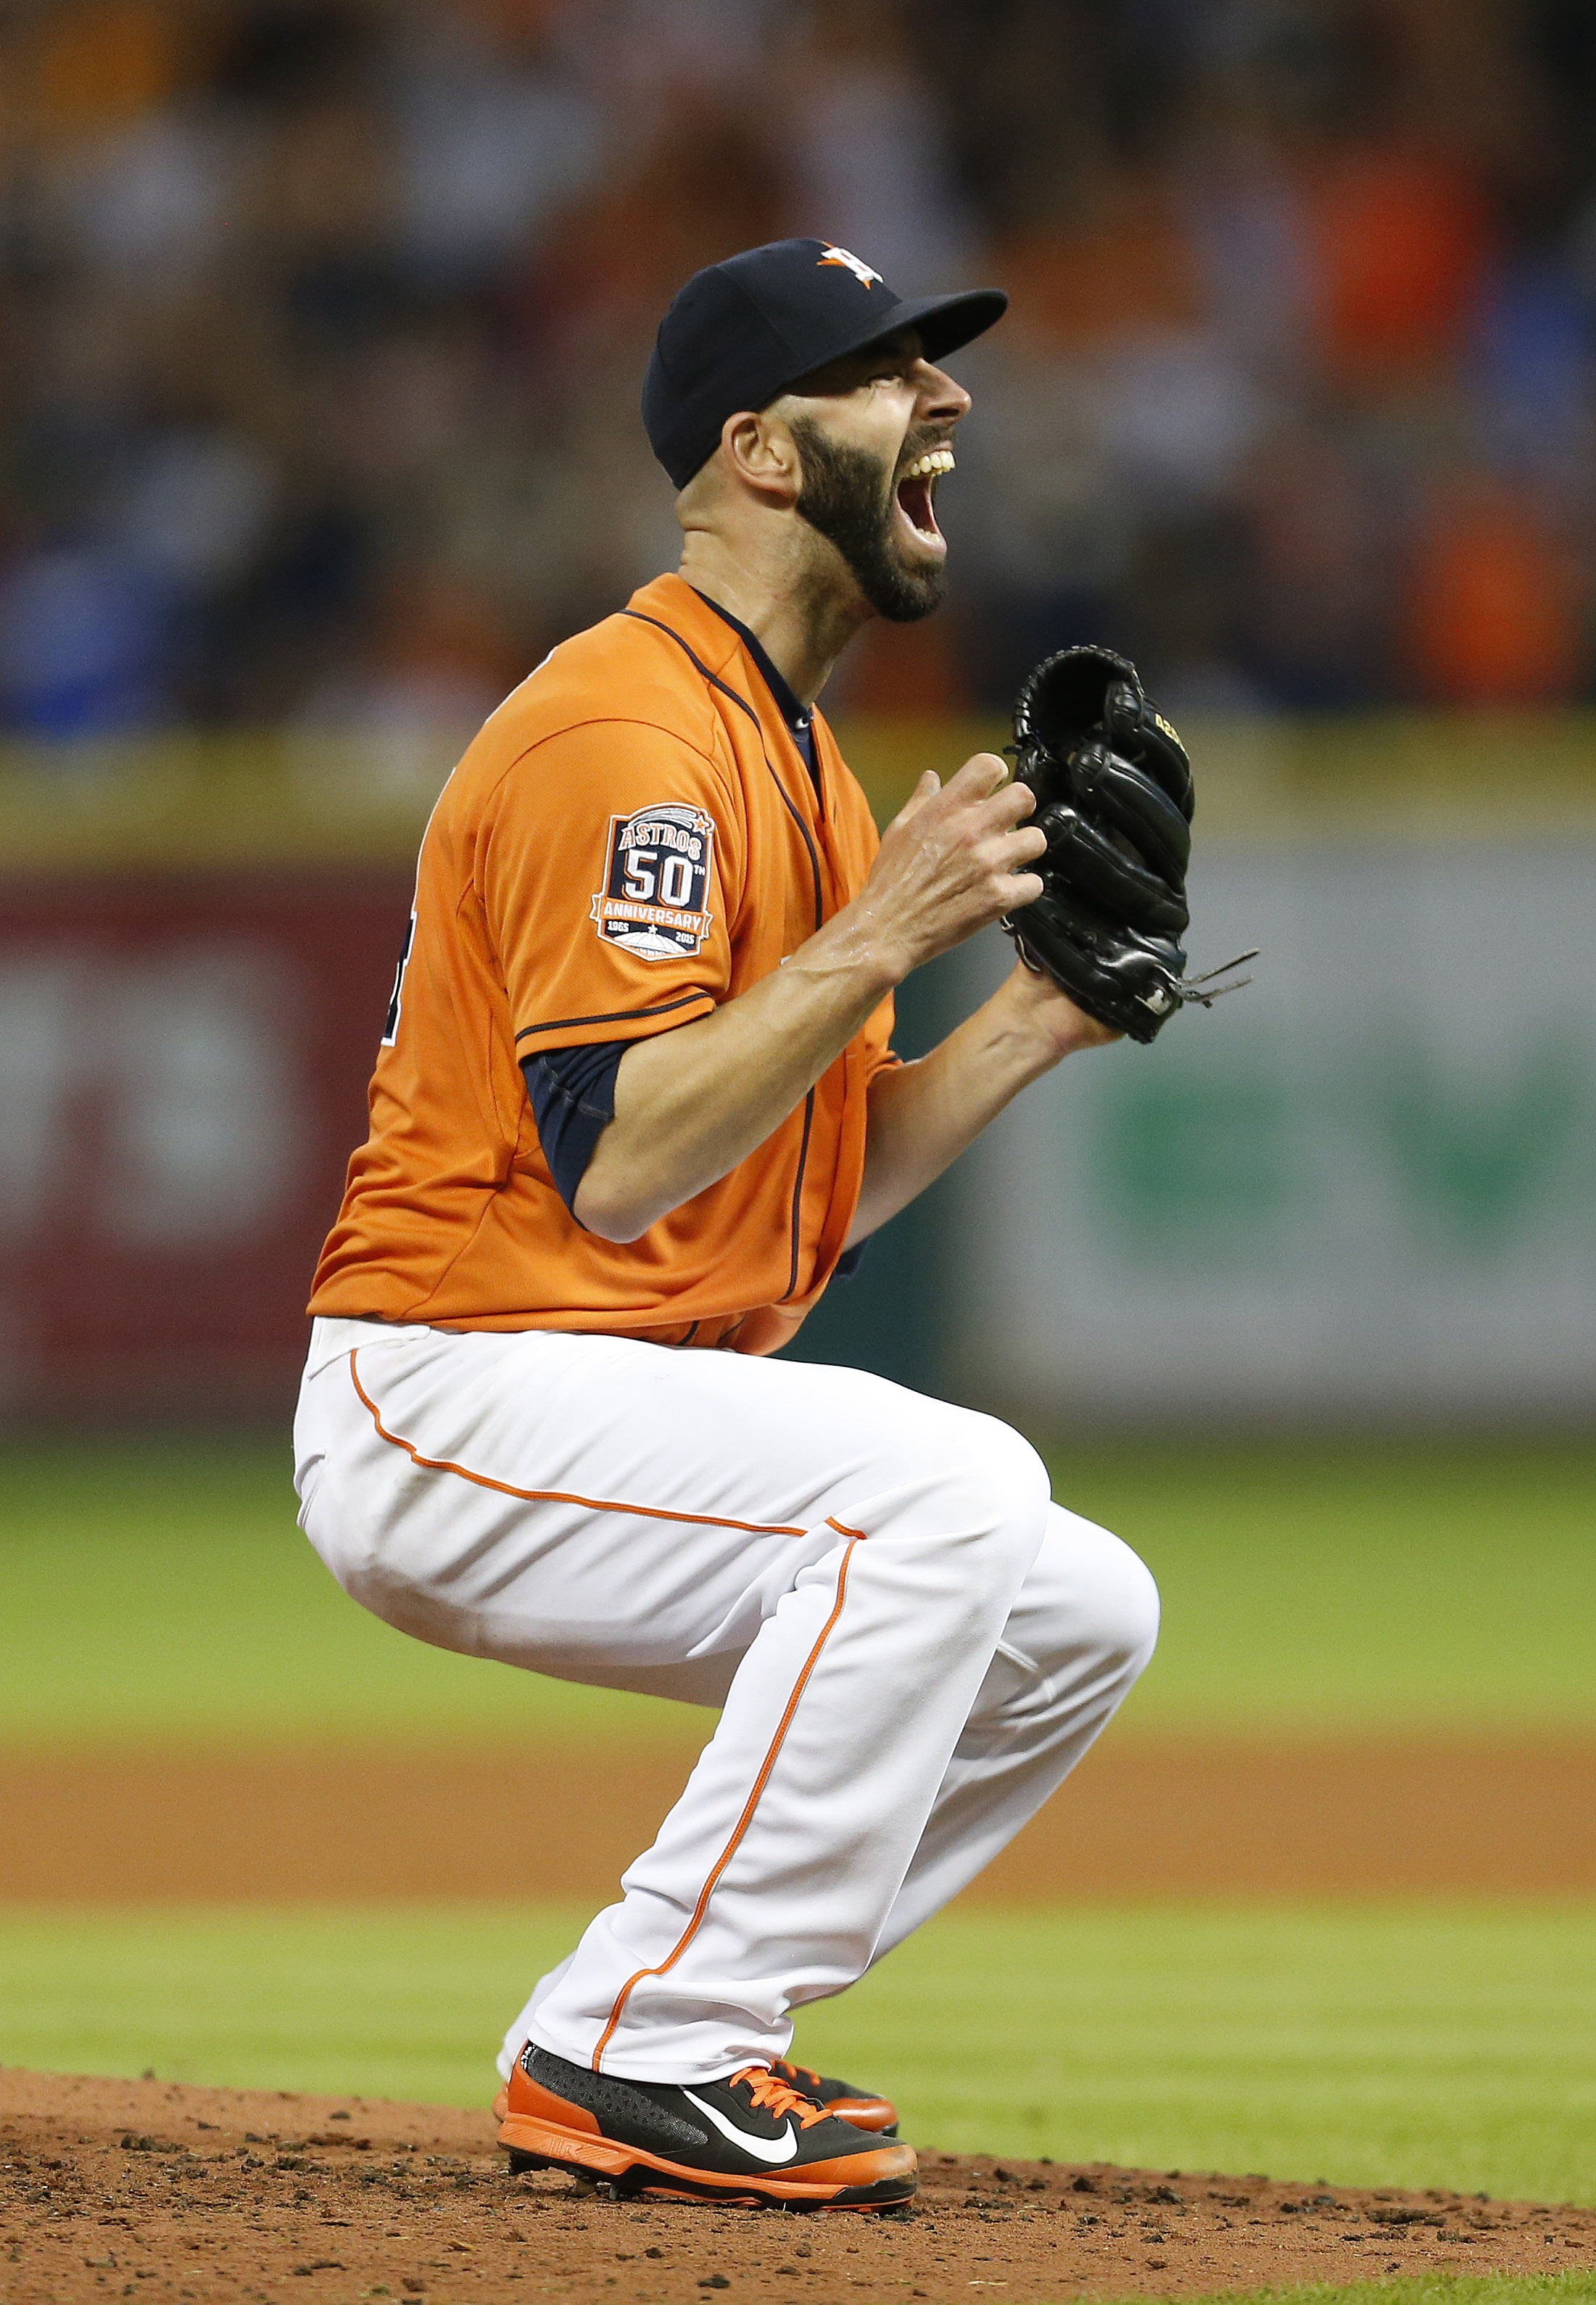 Houston Astros starting pitcher Mike Fiers celebrates his no-hitter in a baseball game against the Los Angeles Dodgers, Friday, Aug. 21, 2015, in Houston. The Astros won 3-0. (Karen Warren/Houston Chronicle via AP)